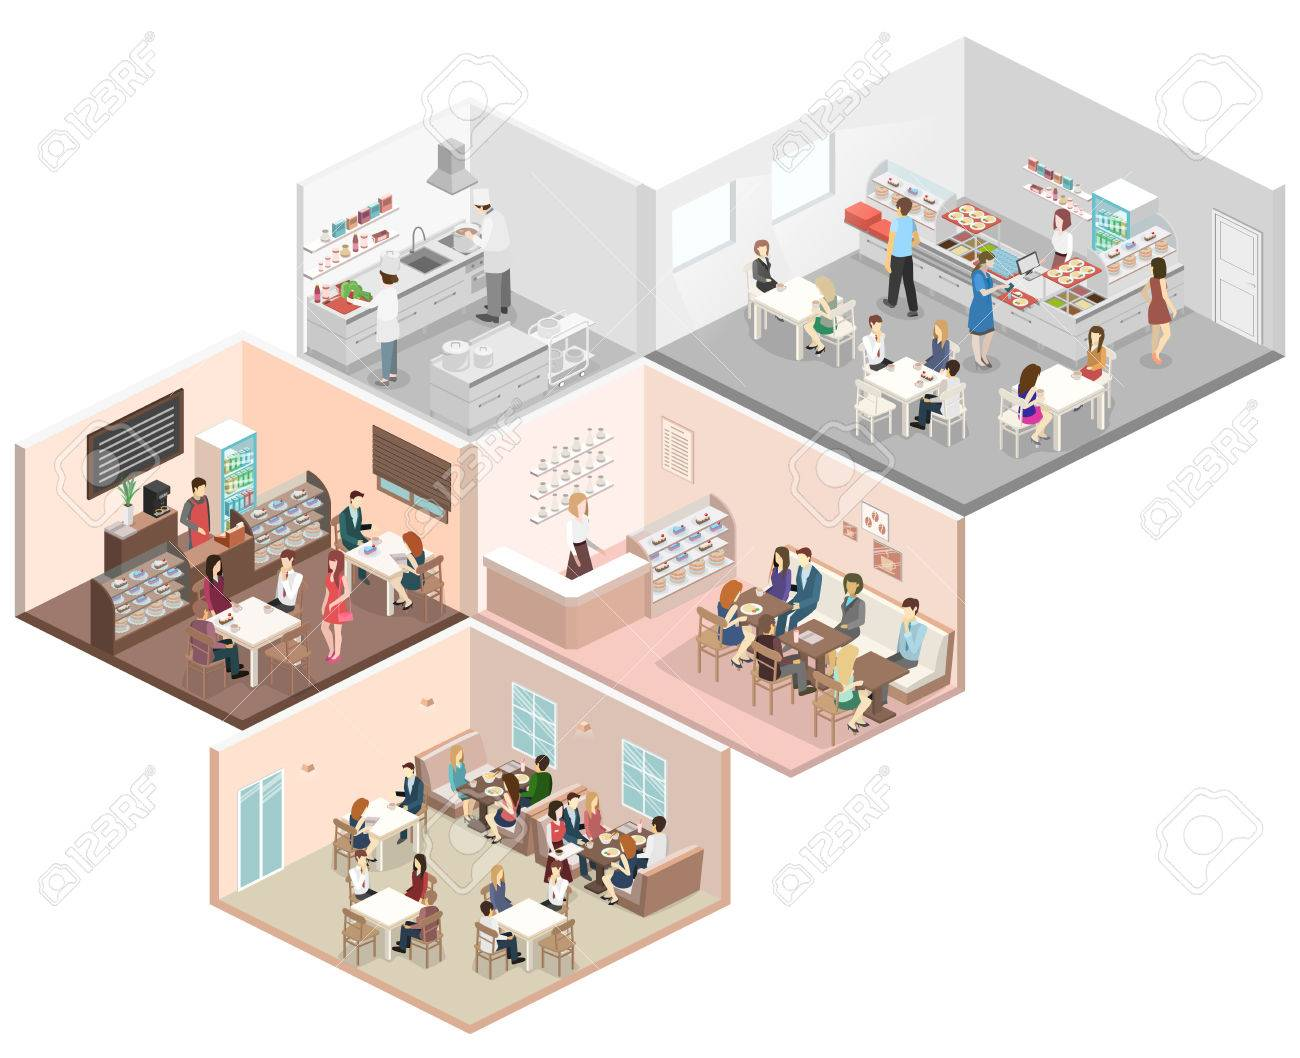 Isometric Flat 3d Concept Vector Interior Of Sweet Shop Cafe Royalty Free Cliparts Vectors And Stock Illustration Image 67795406